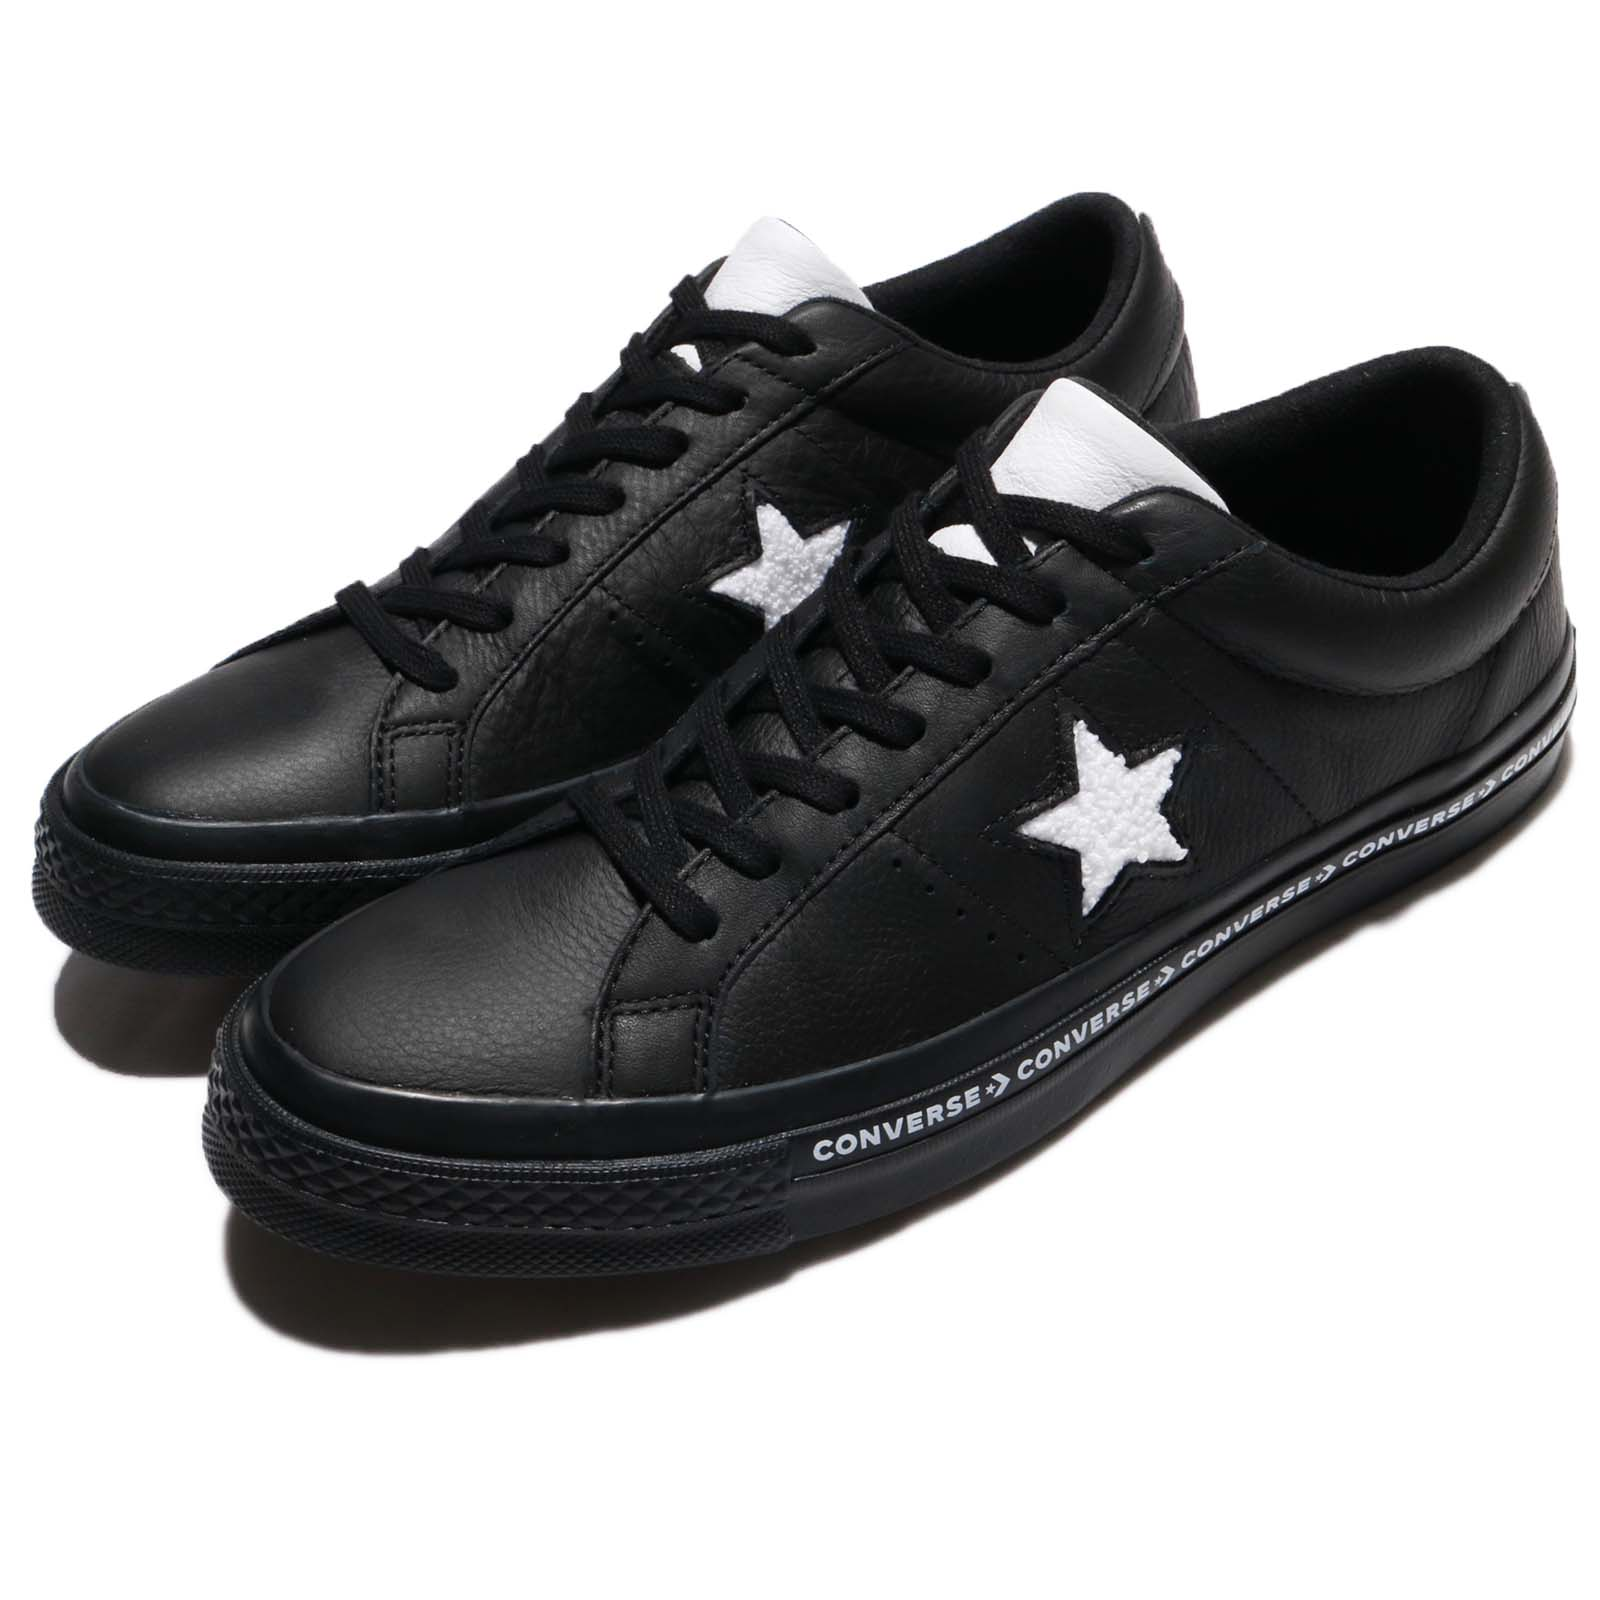 Terry About Shoes Men White Details 159721c Trainers One Black Star Leather Sneakers Converse nOk0w8P